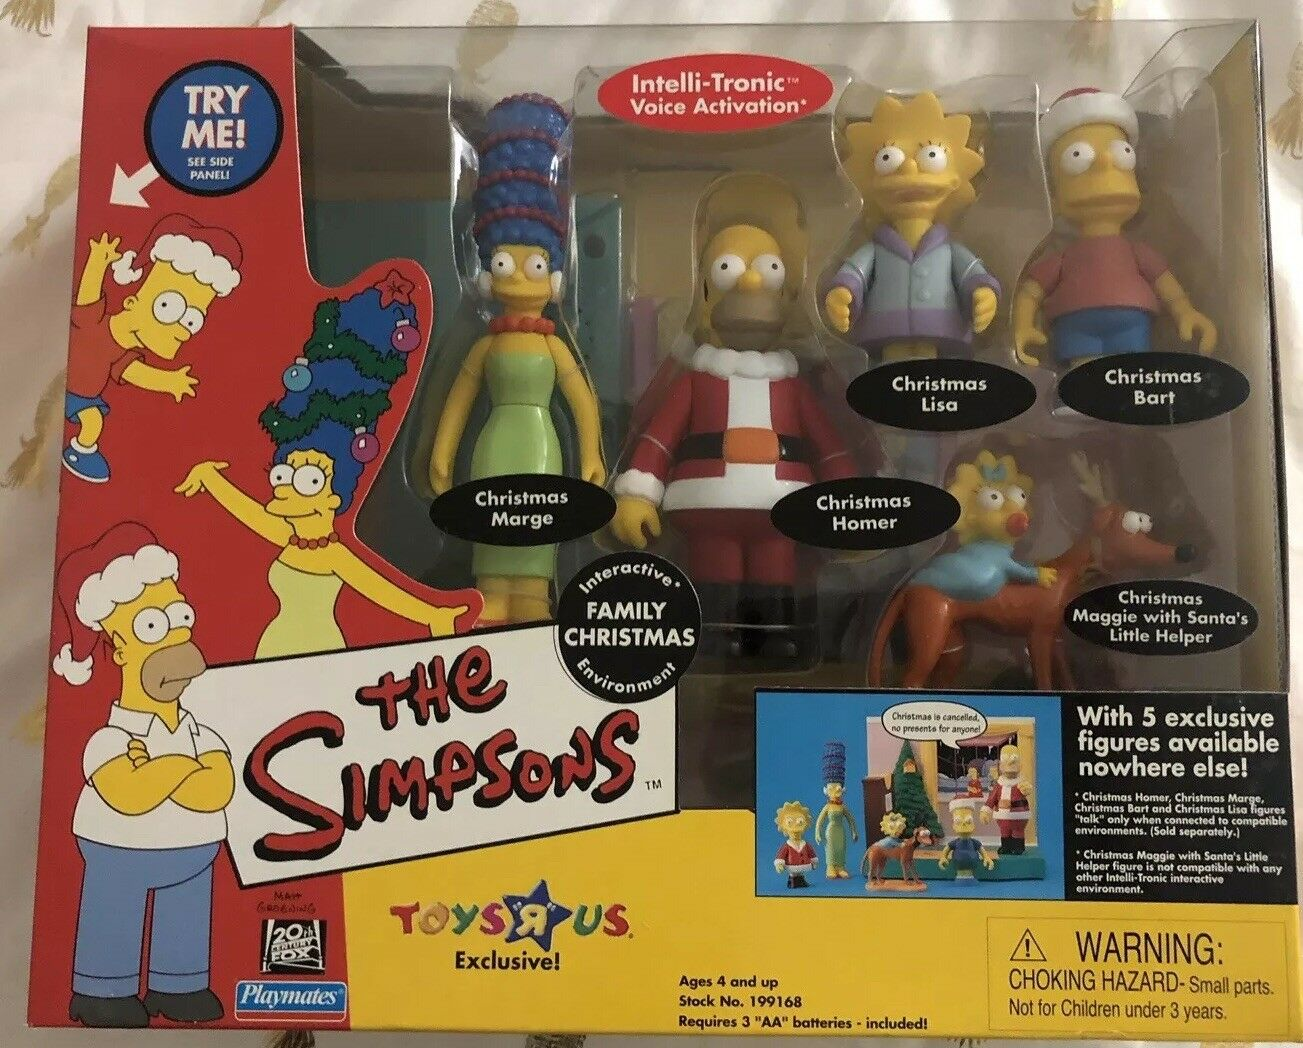 Simpsons Interactive Family Christmas - Marge, Homer, Lisa, Bart, Maggie